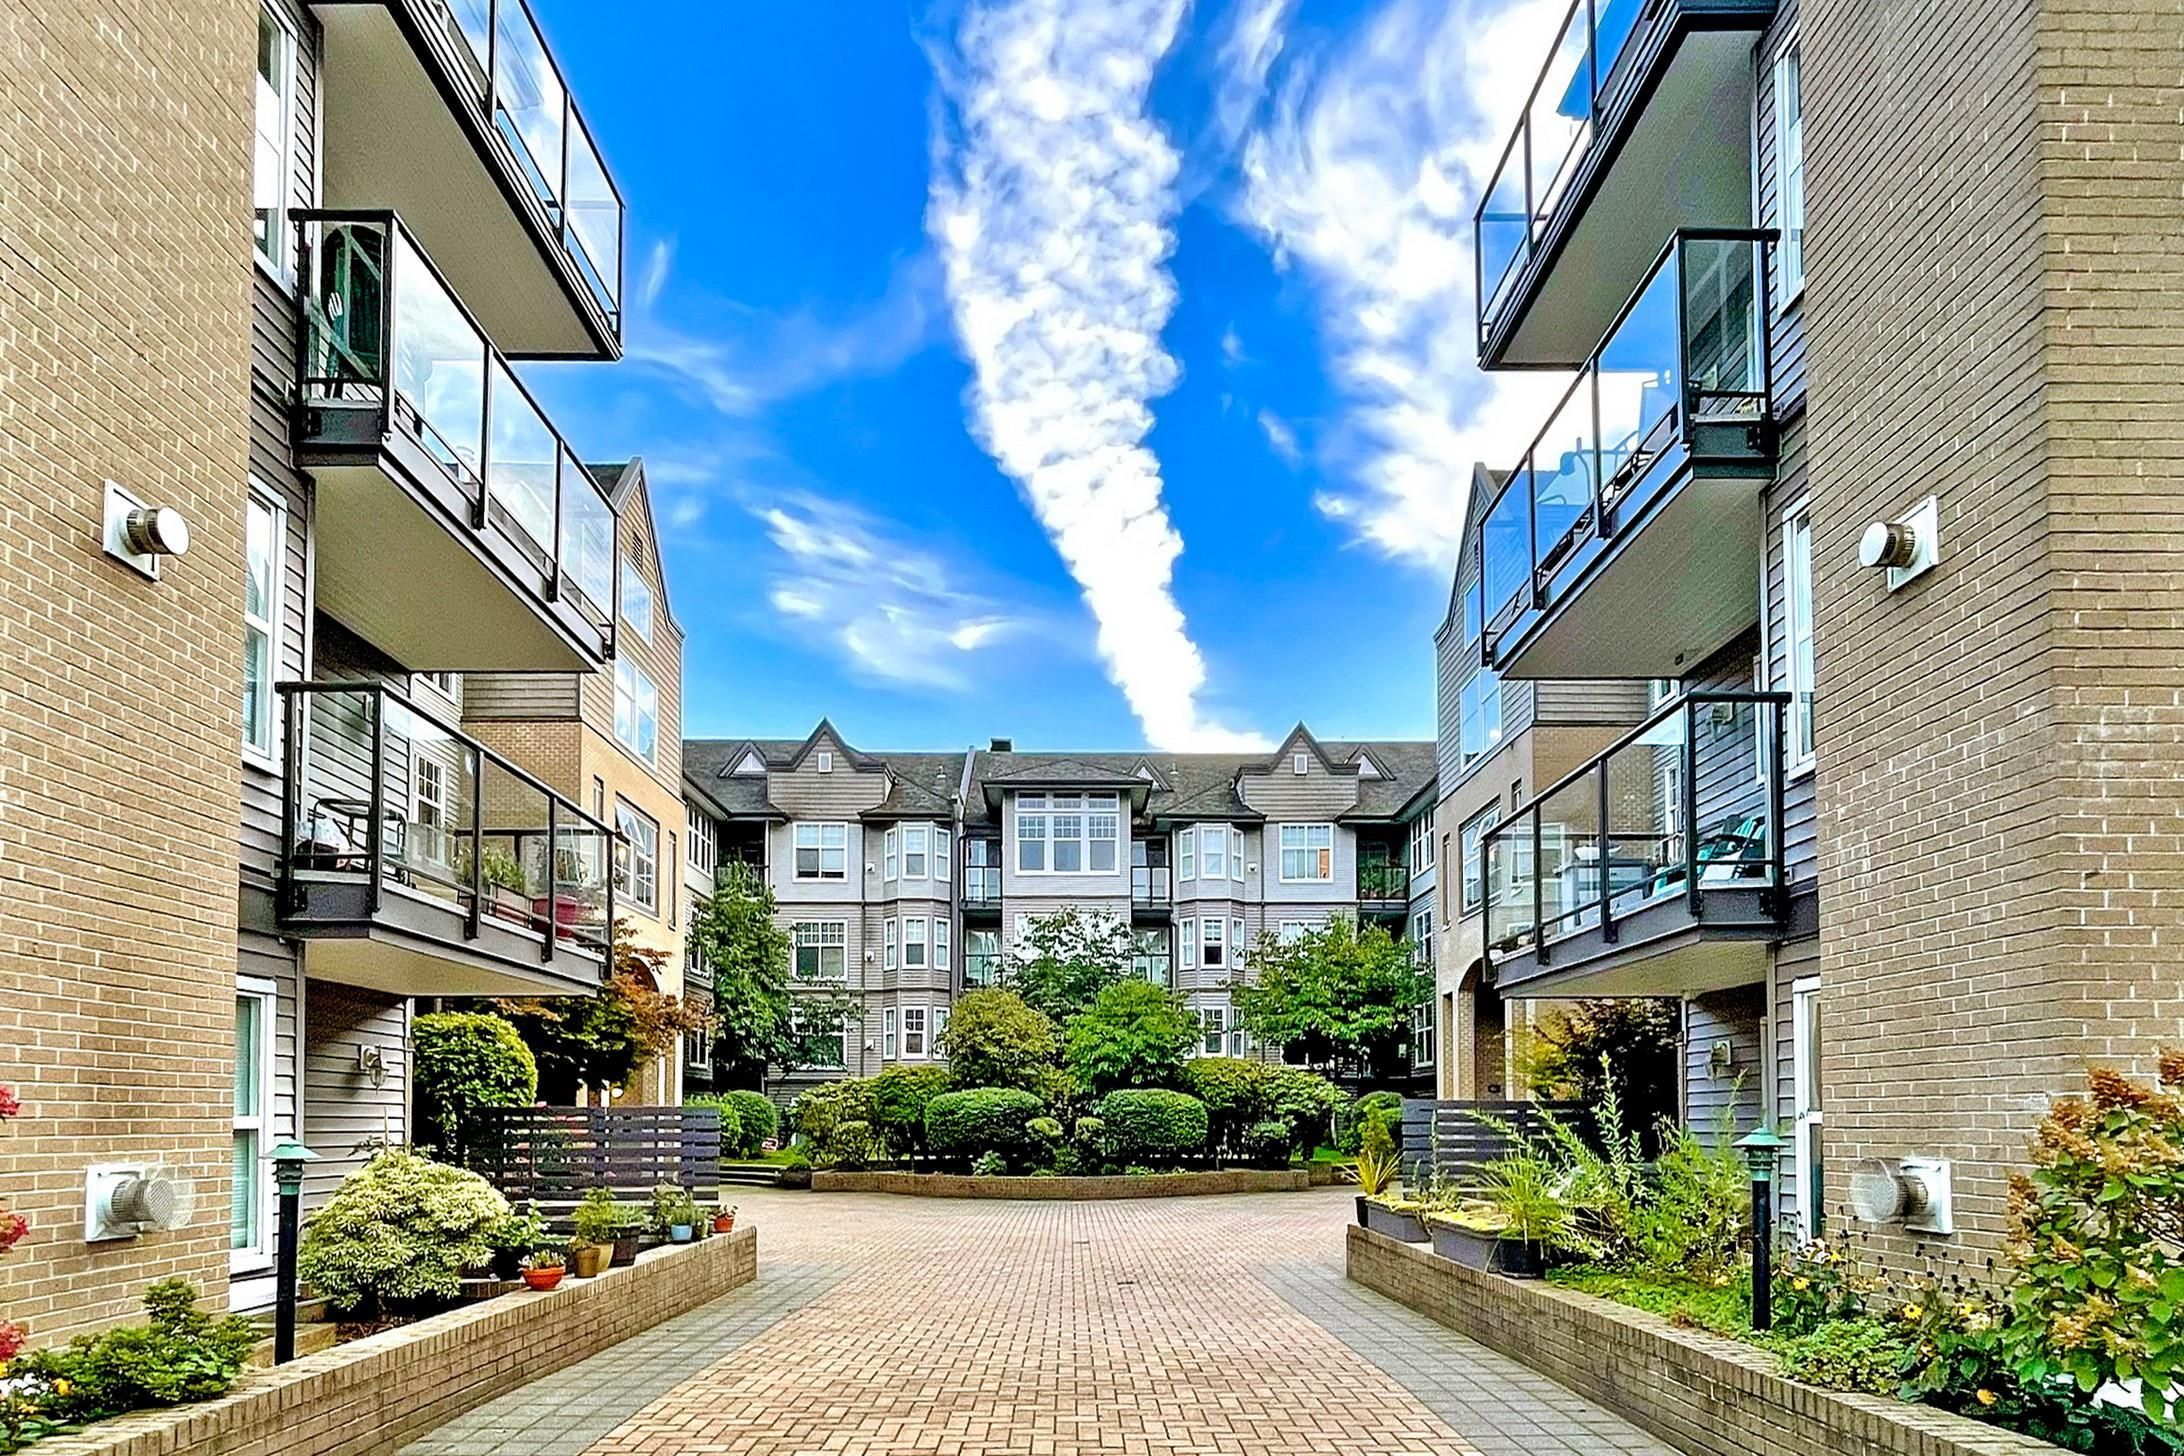 Main Photo: 106 20200 56 Avenue in Langley: Langley City Condo for sale : MLS®# R2620442